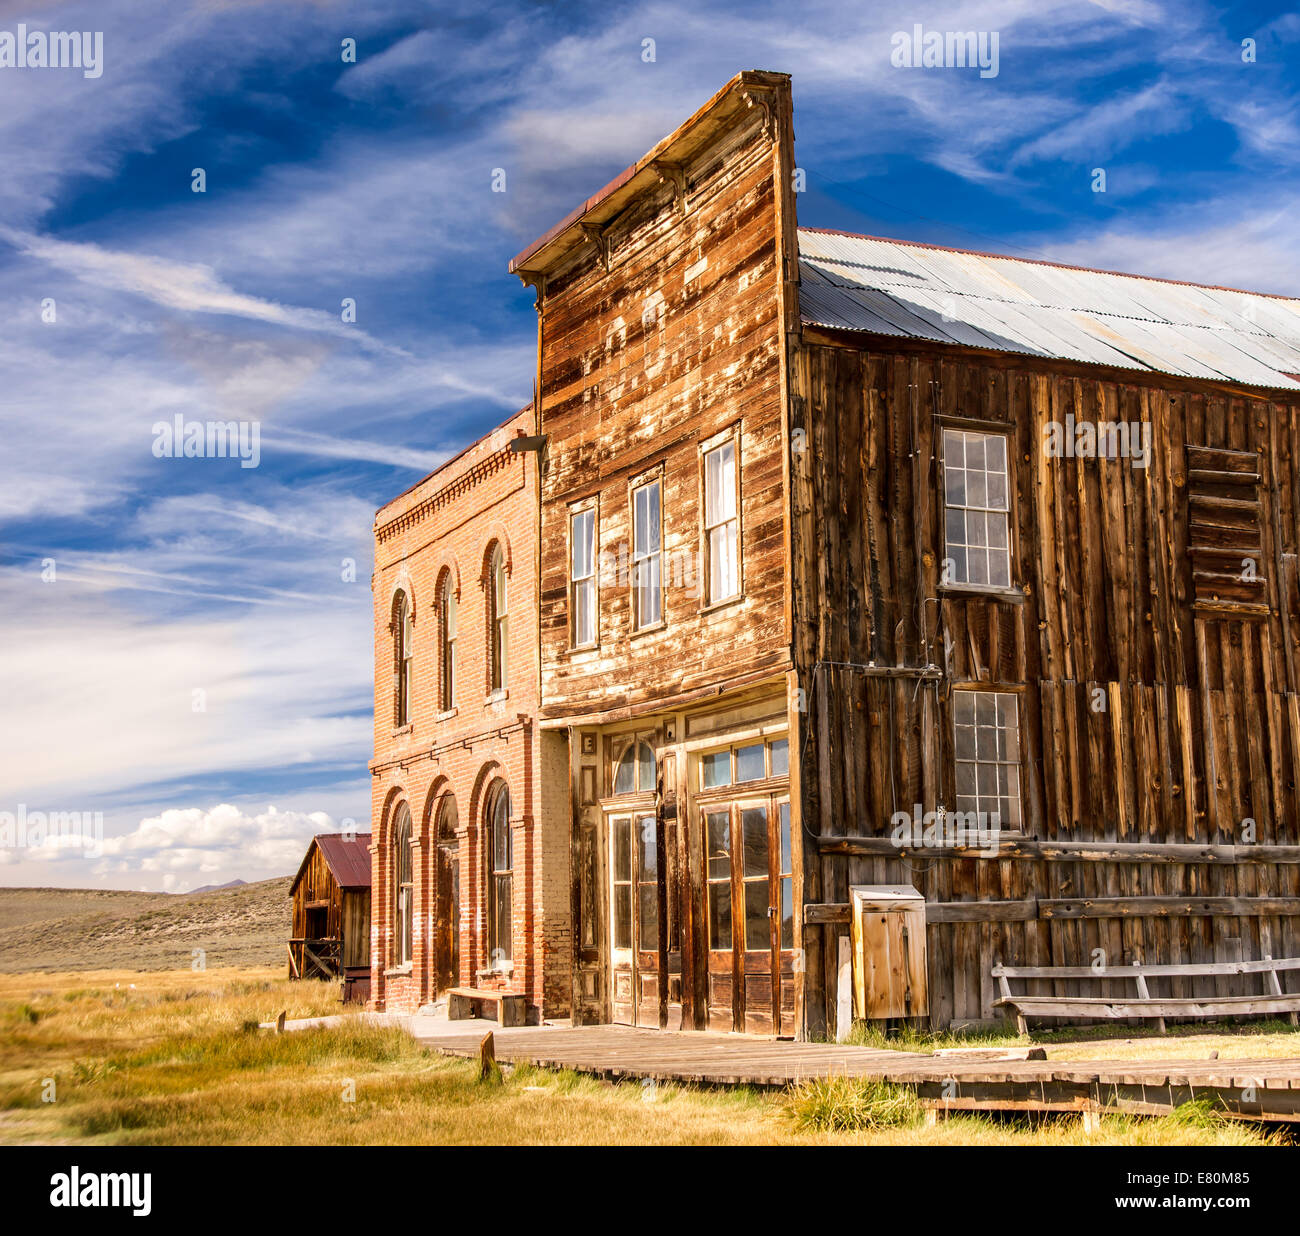 Historic main street buildings in an old west gold rush ghost town of Bodie, California - Stock Image